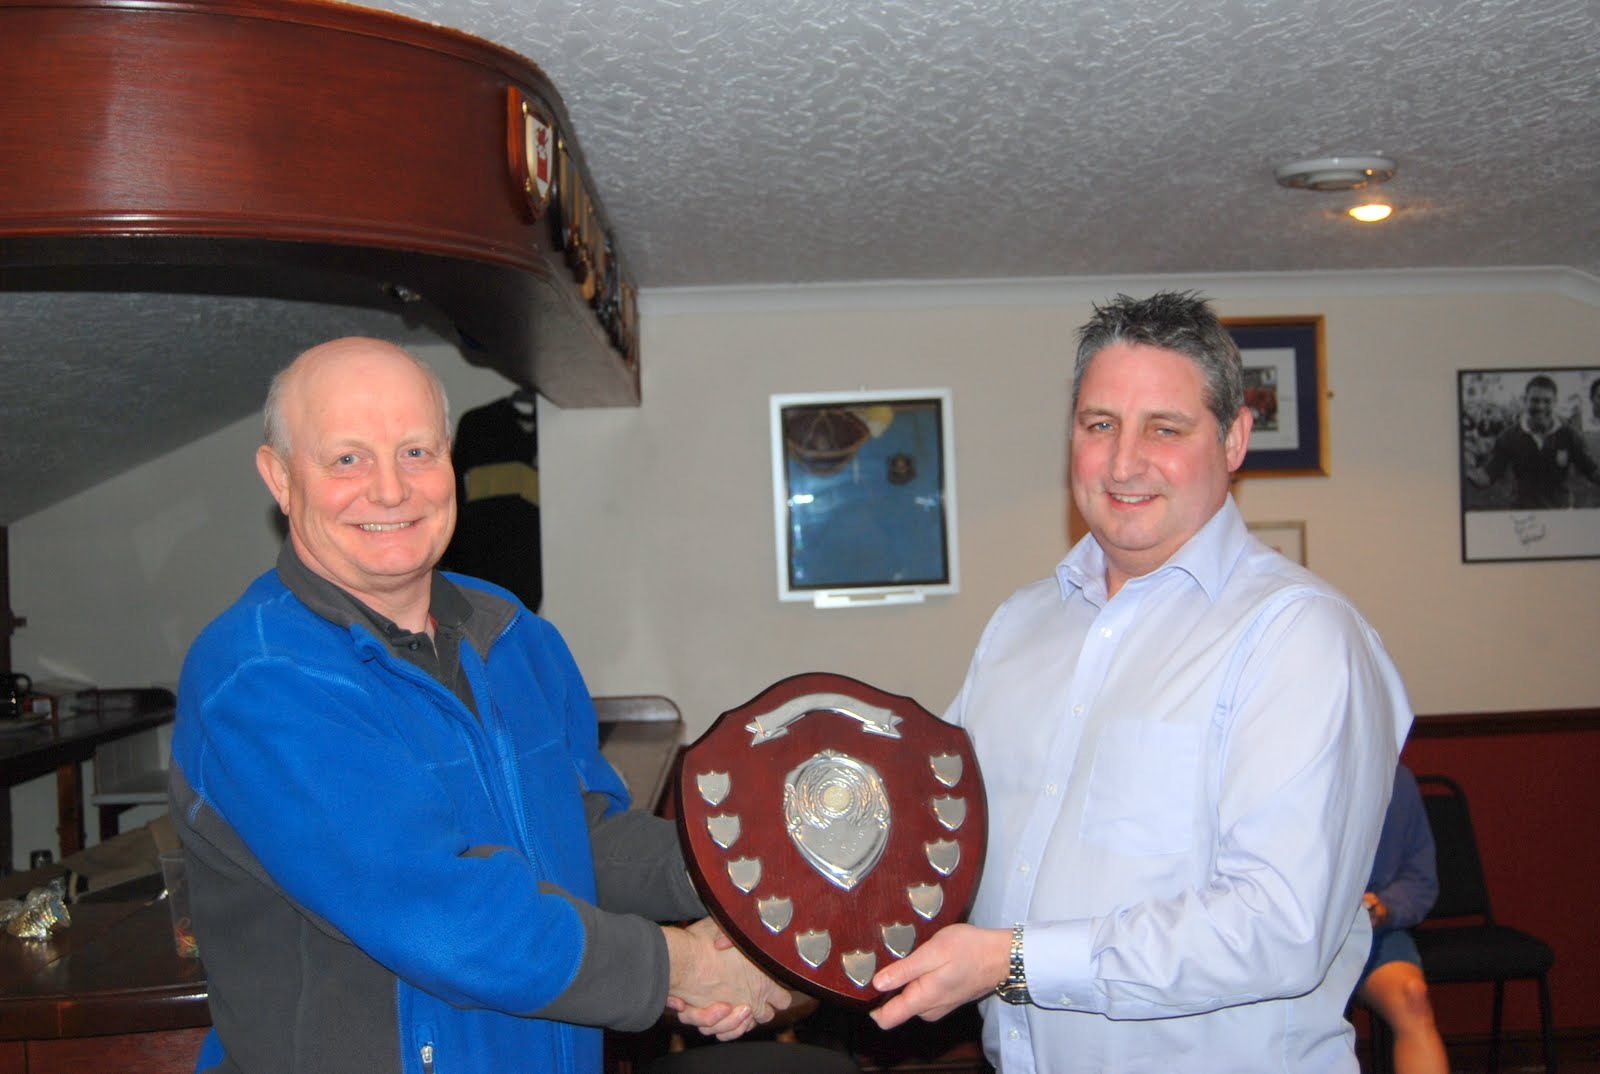 Newton Abbot's Phil Whiting receives the BWWPL Shield for the Women's Division 2011.